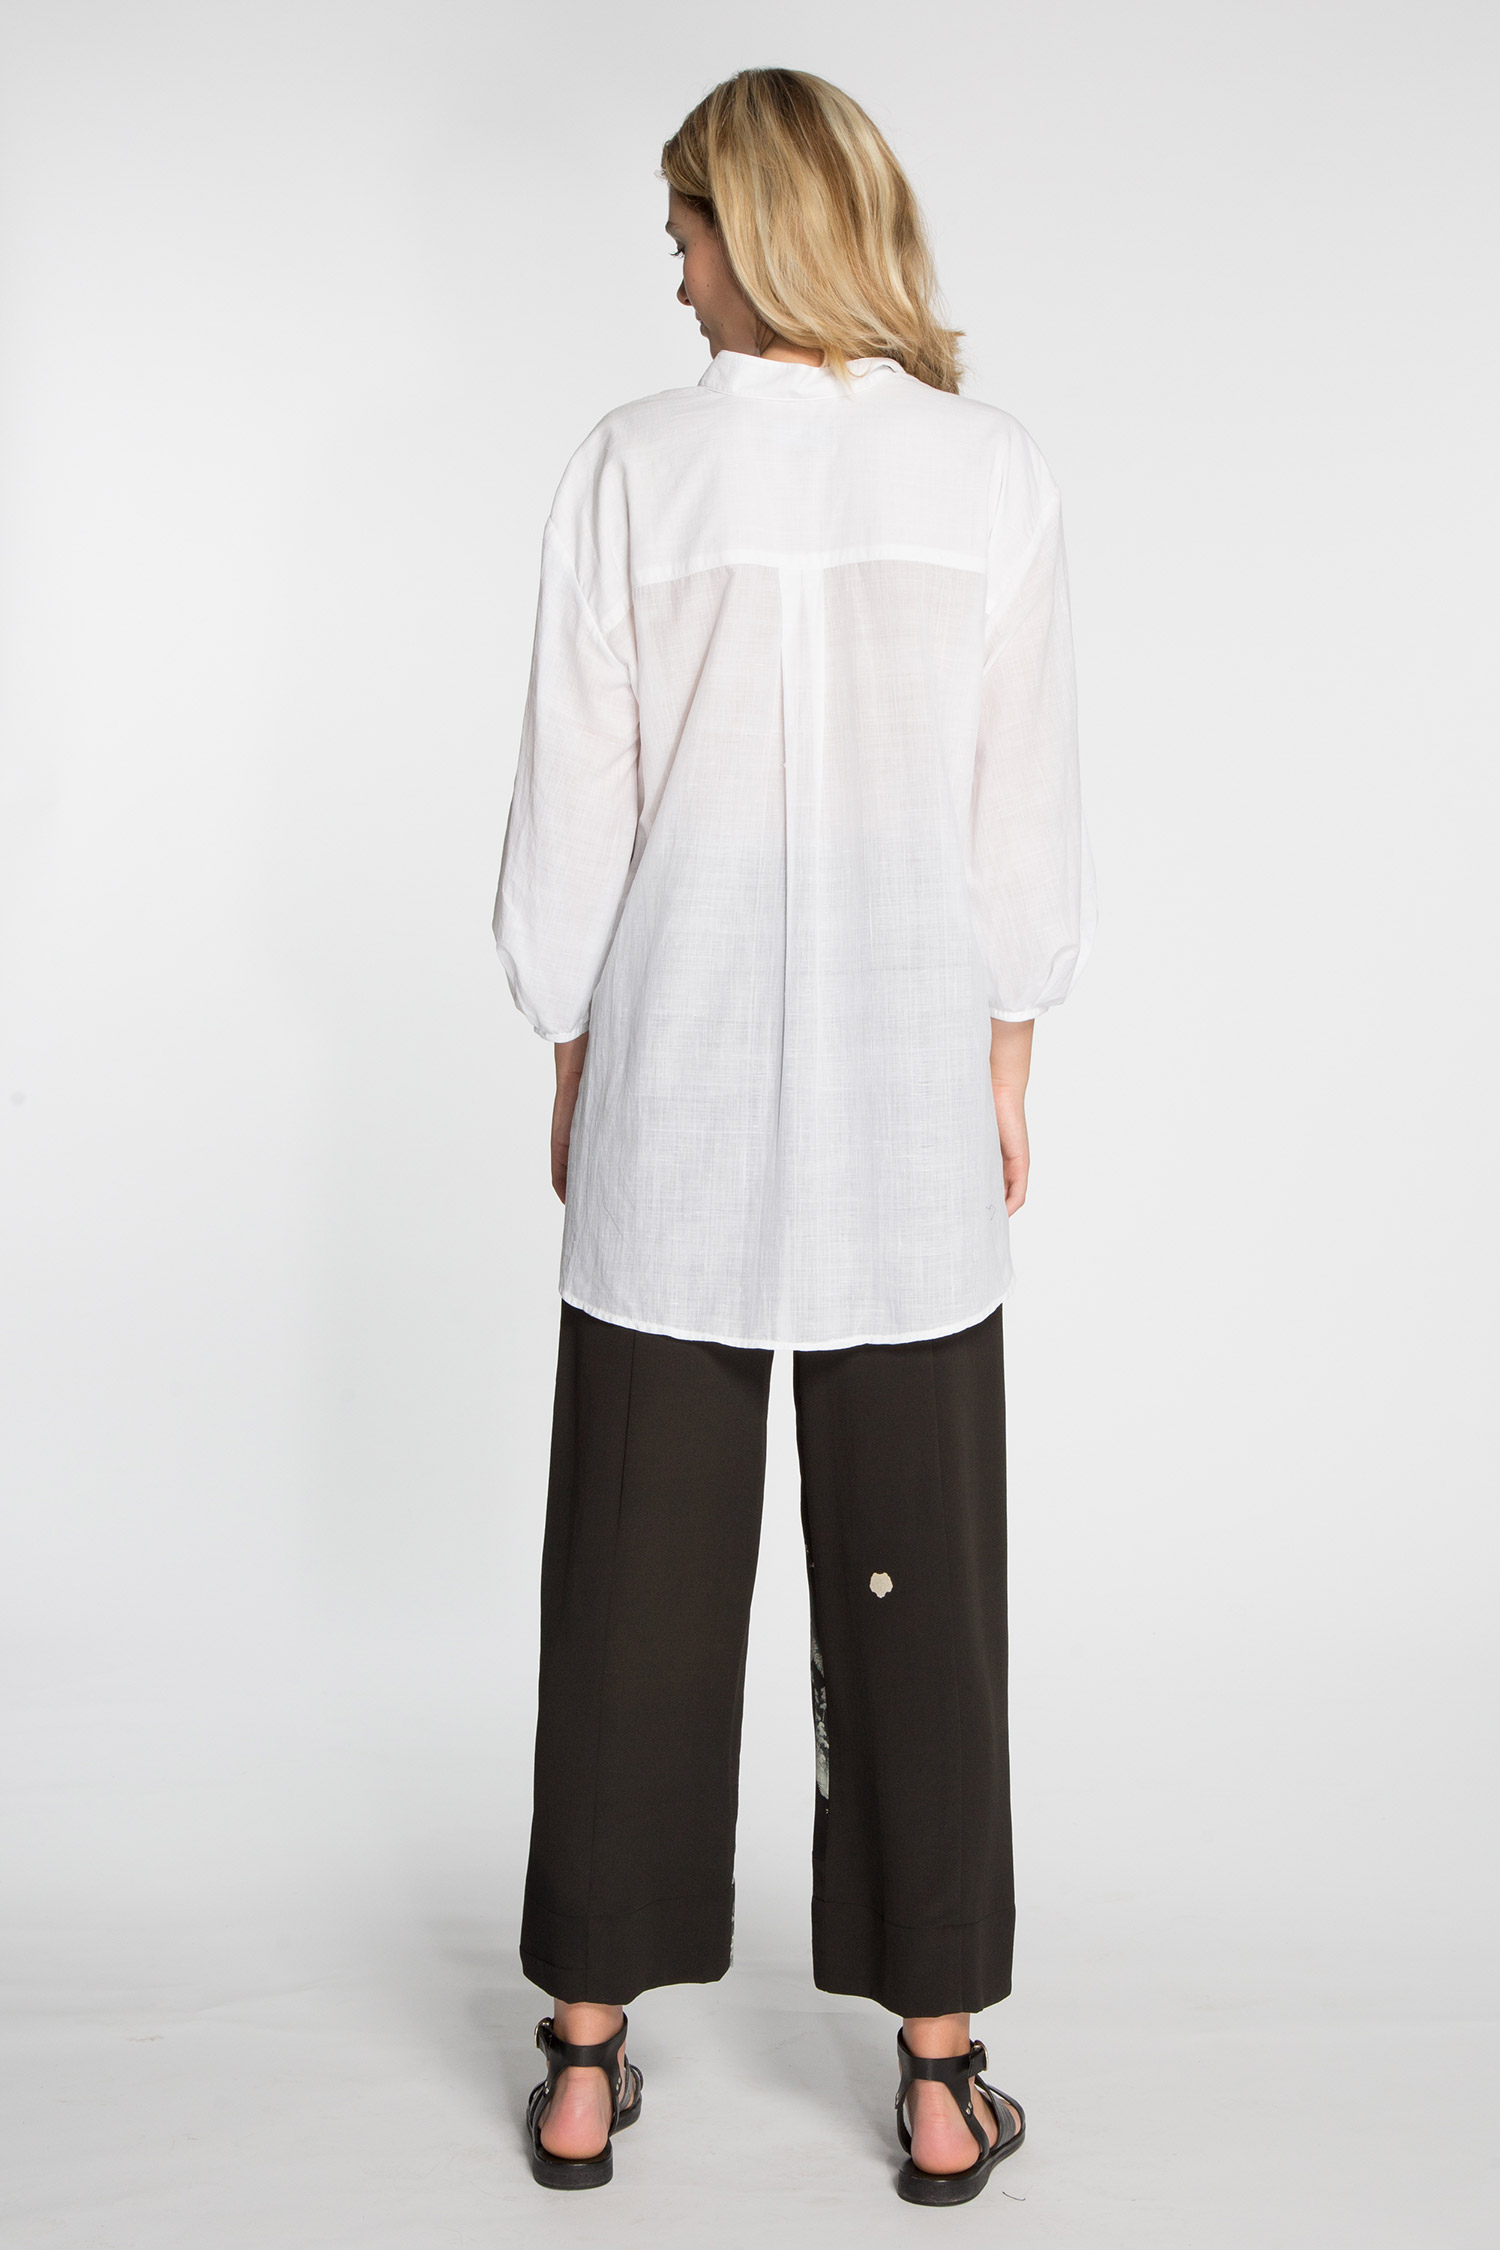 Look2-madison-shirt-panel-pant-8-30.jpg